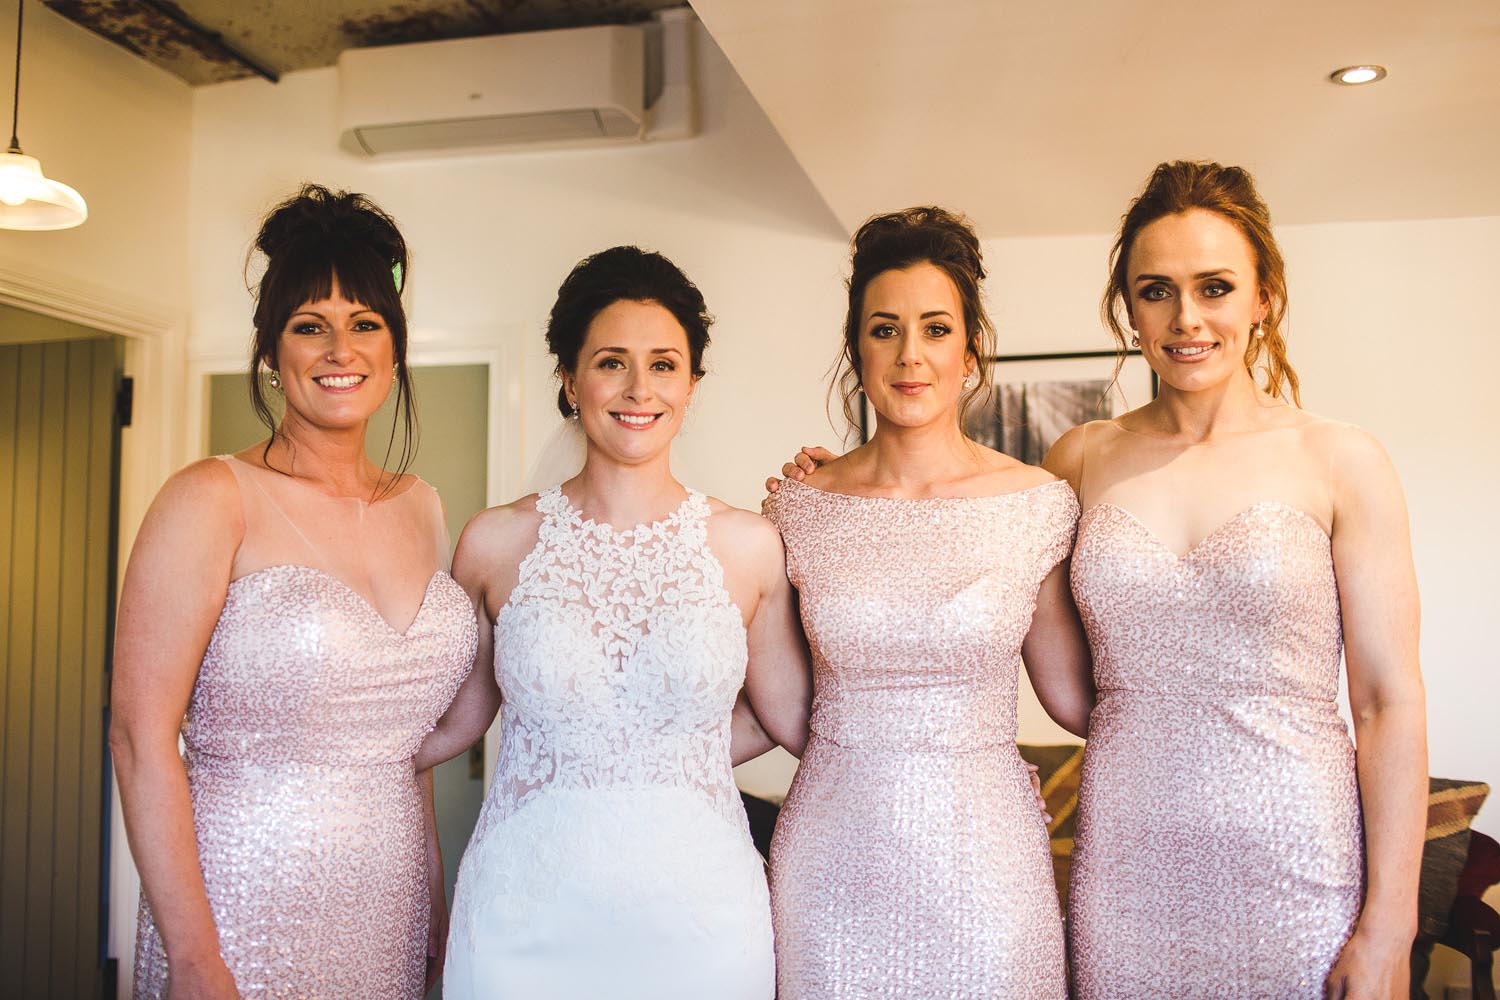 West mill bridesmaids